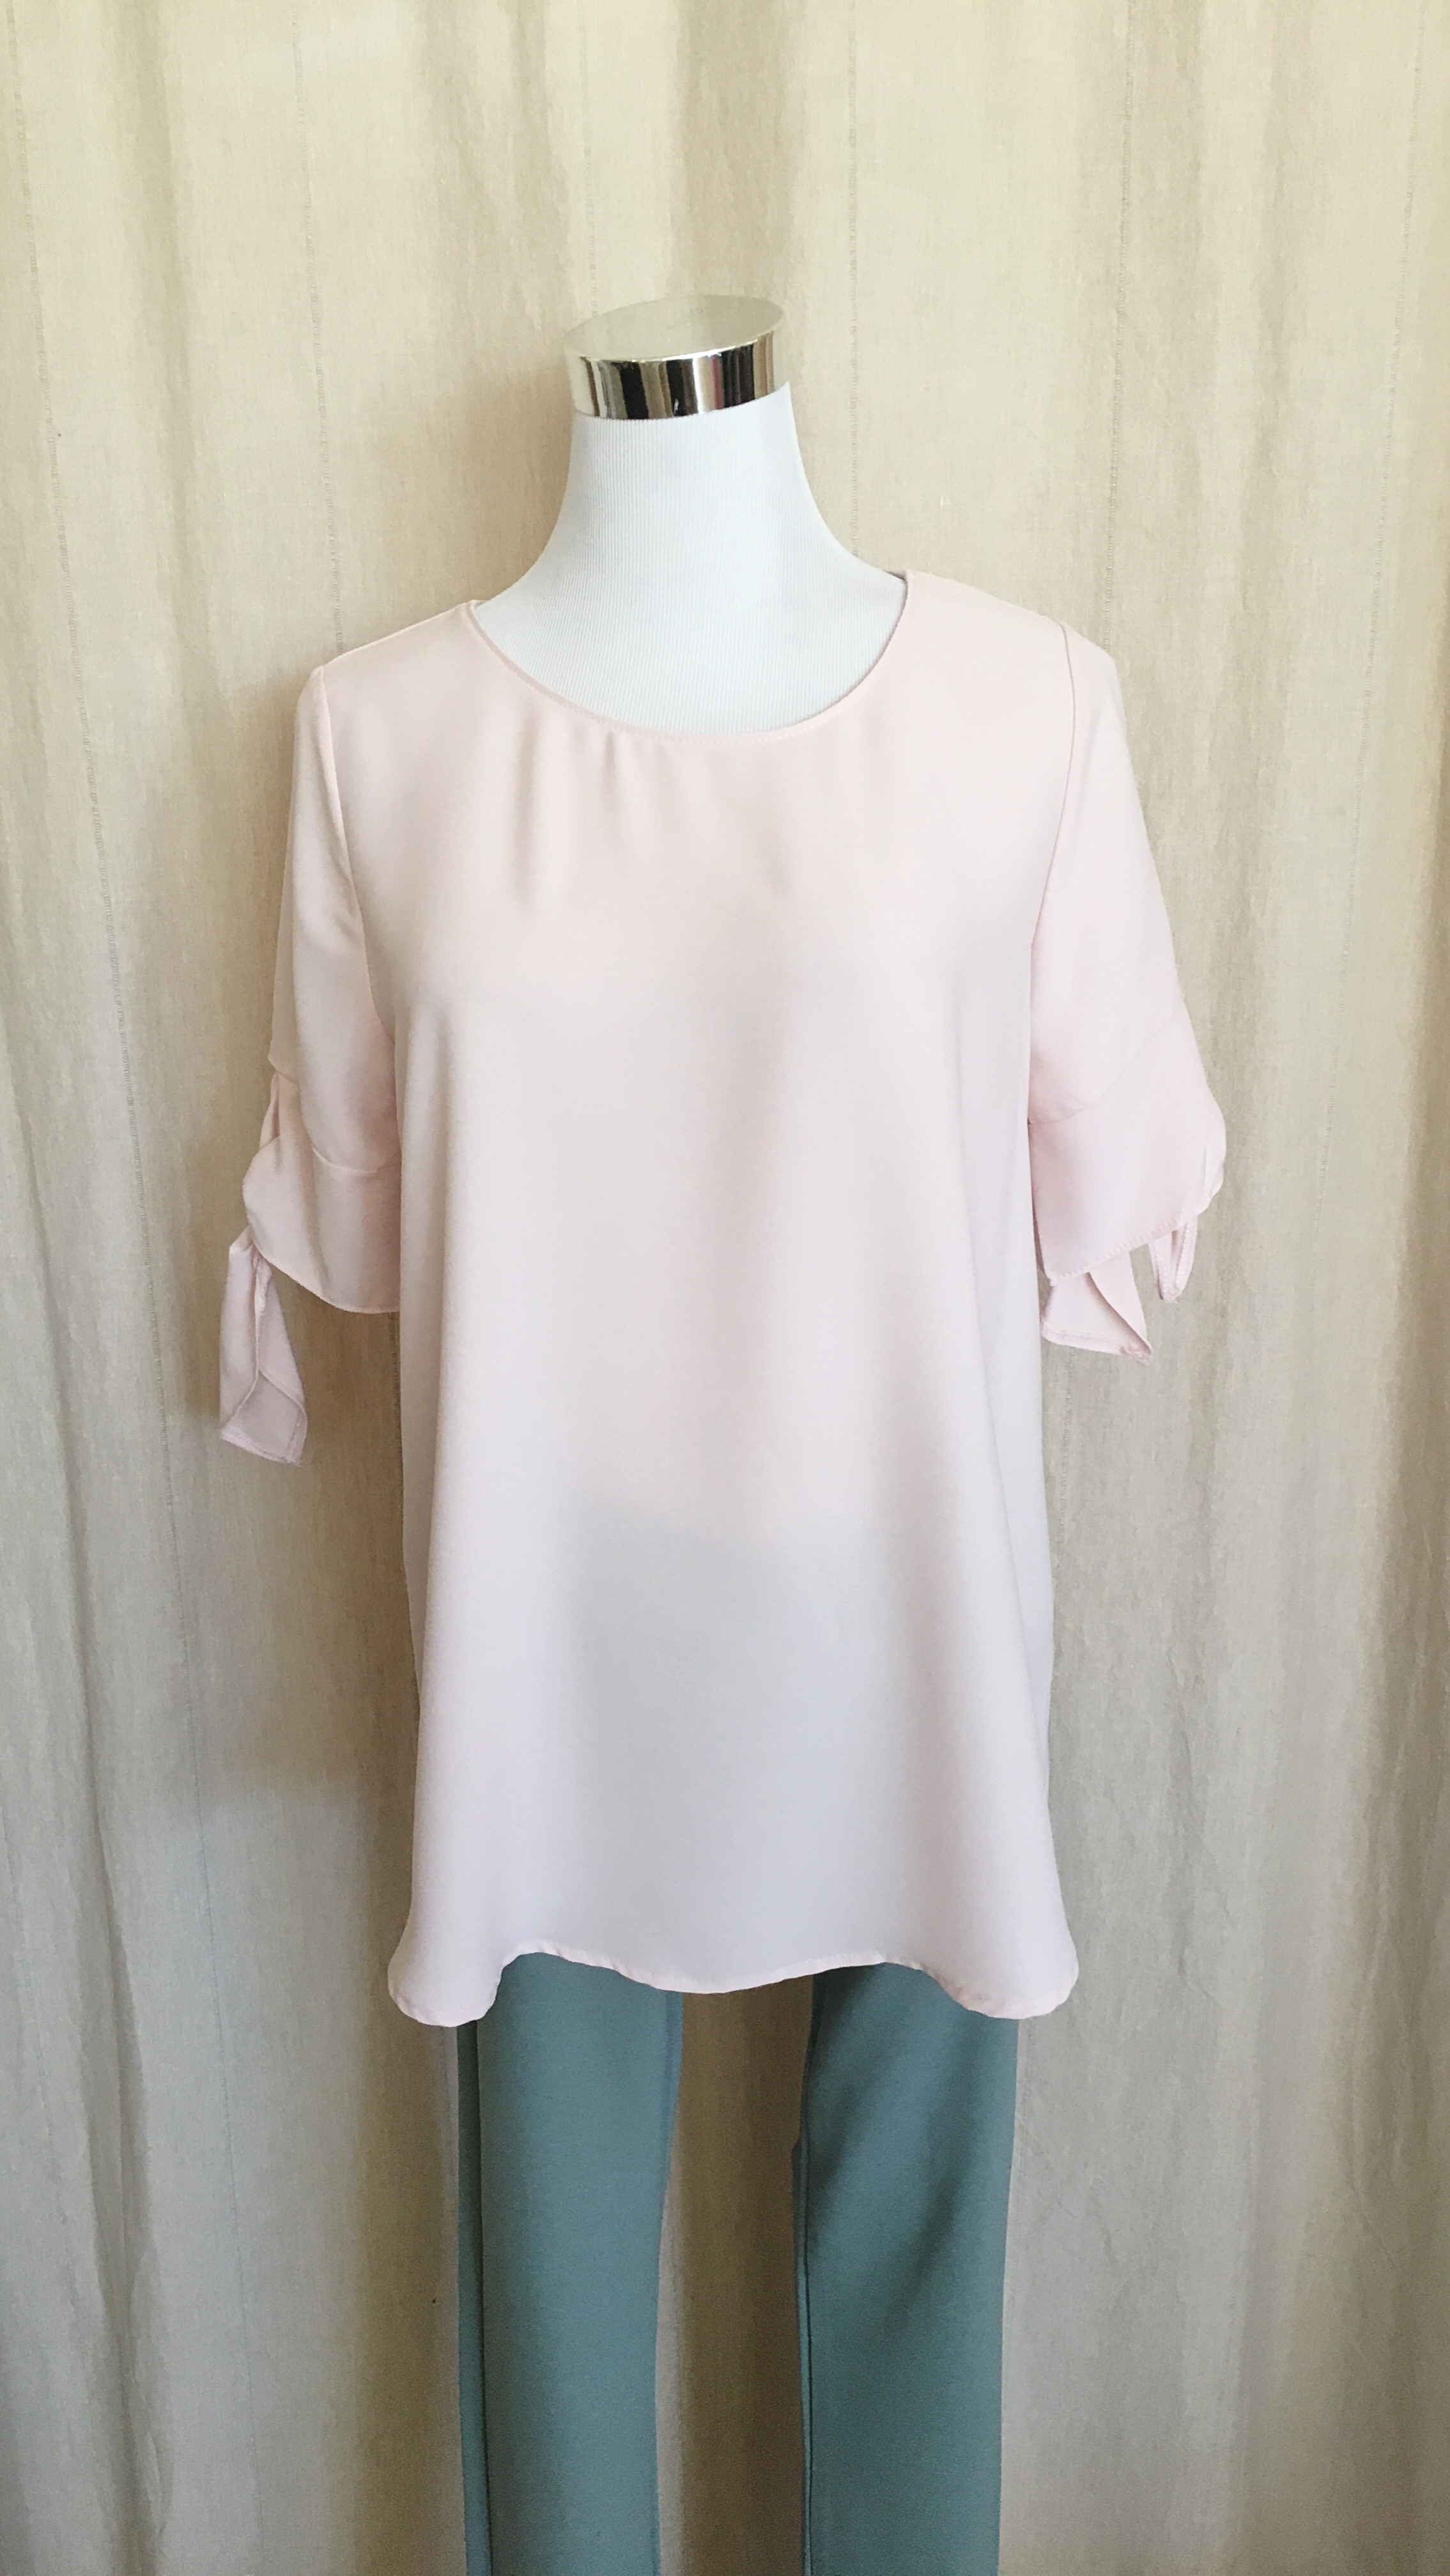 Blush top with romantic tie sleeves. $32